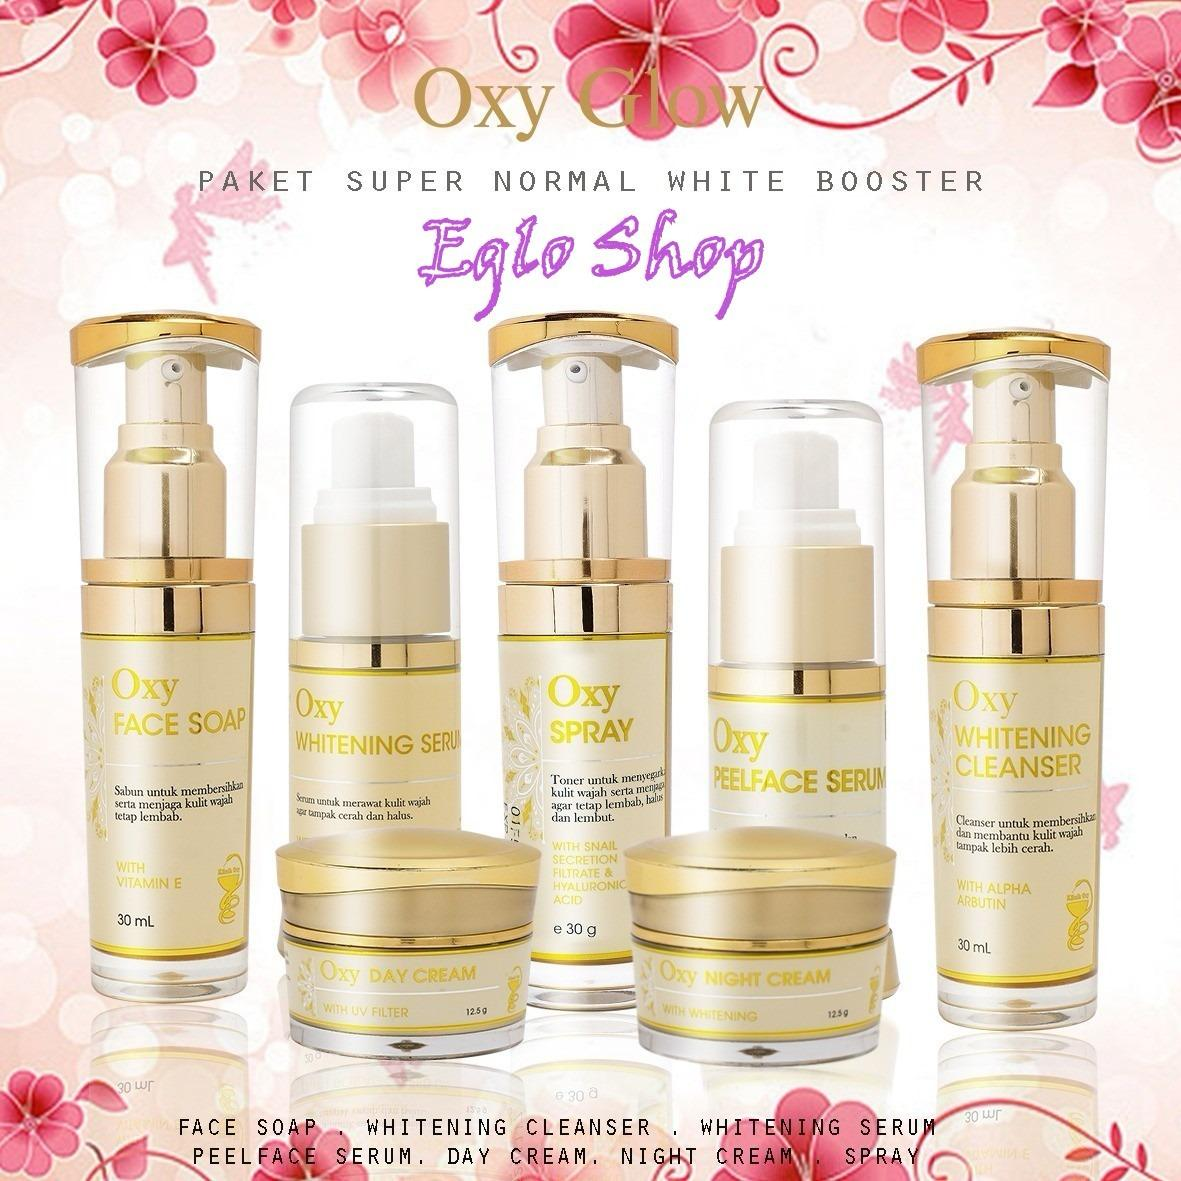 Review Tentang Oxyglow Paket Normal Super Reguler Booster